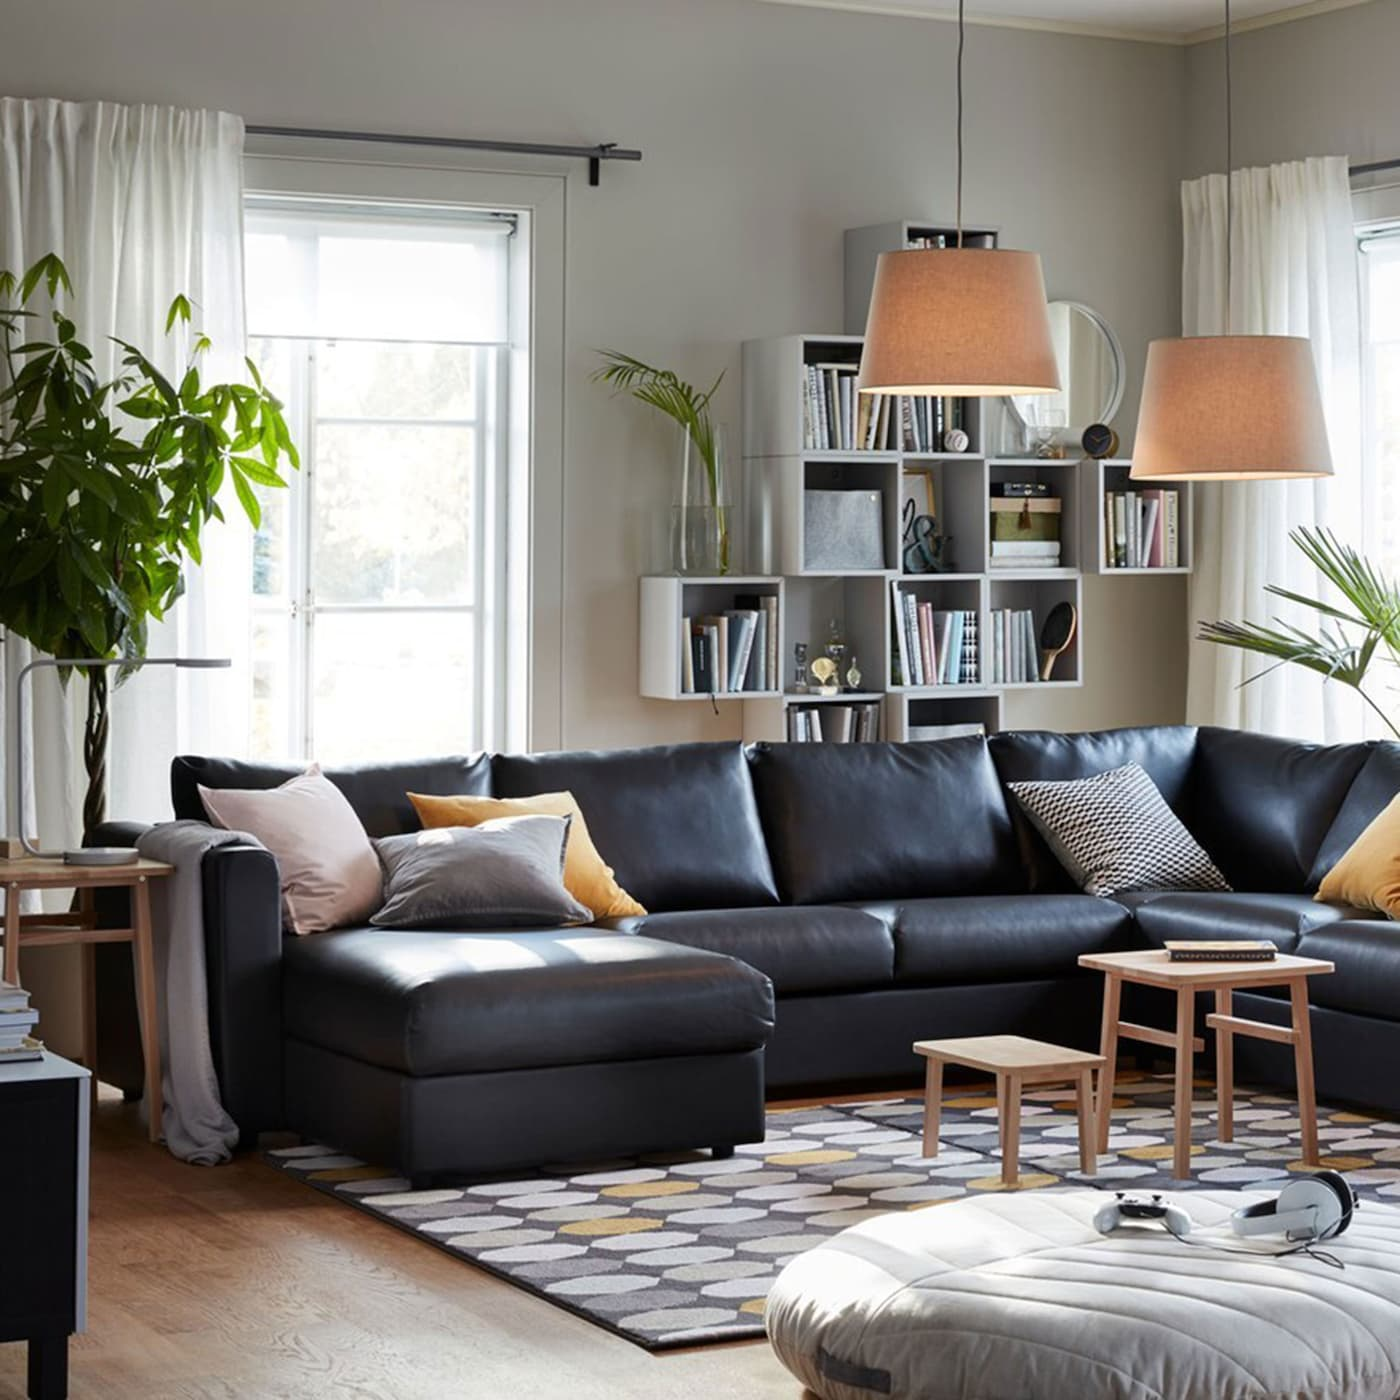 Living room inspiration for big families ikea ikea - Pictures of living room designs ...